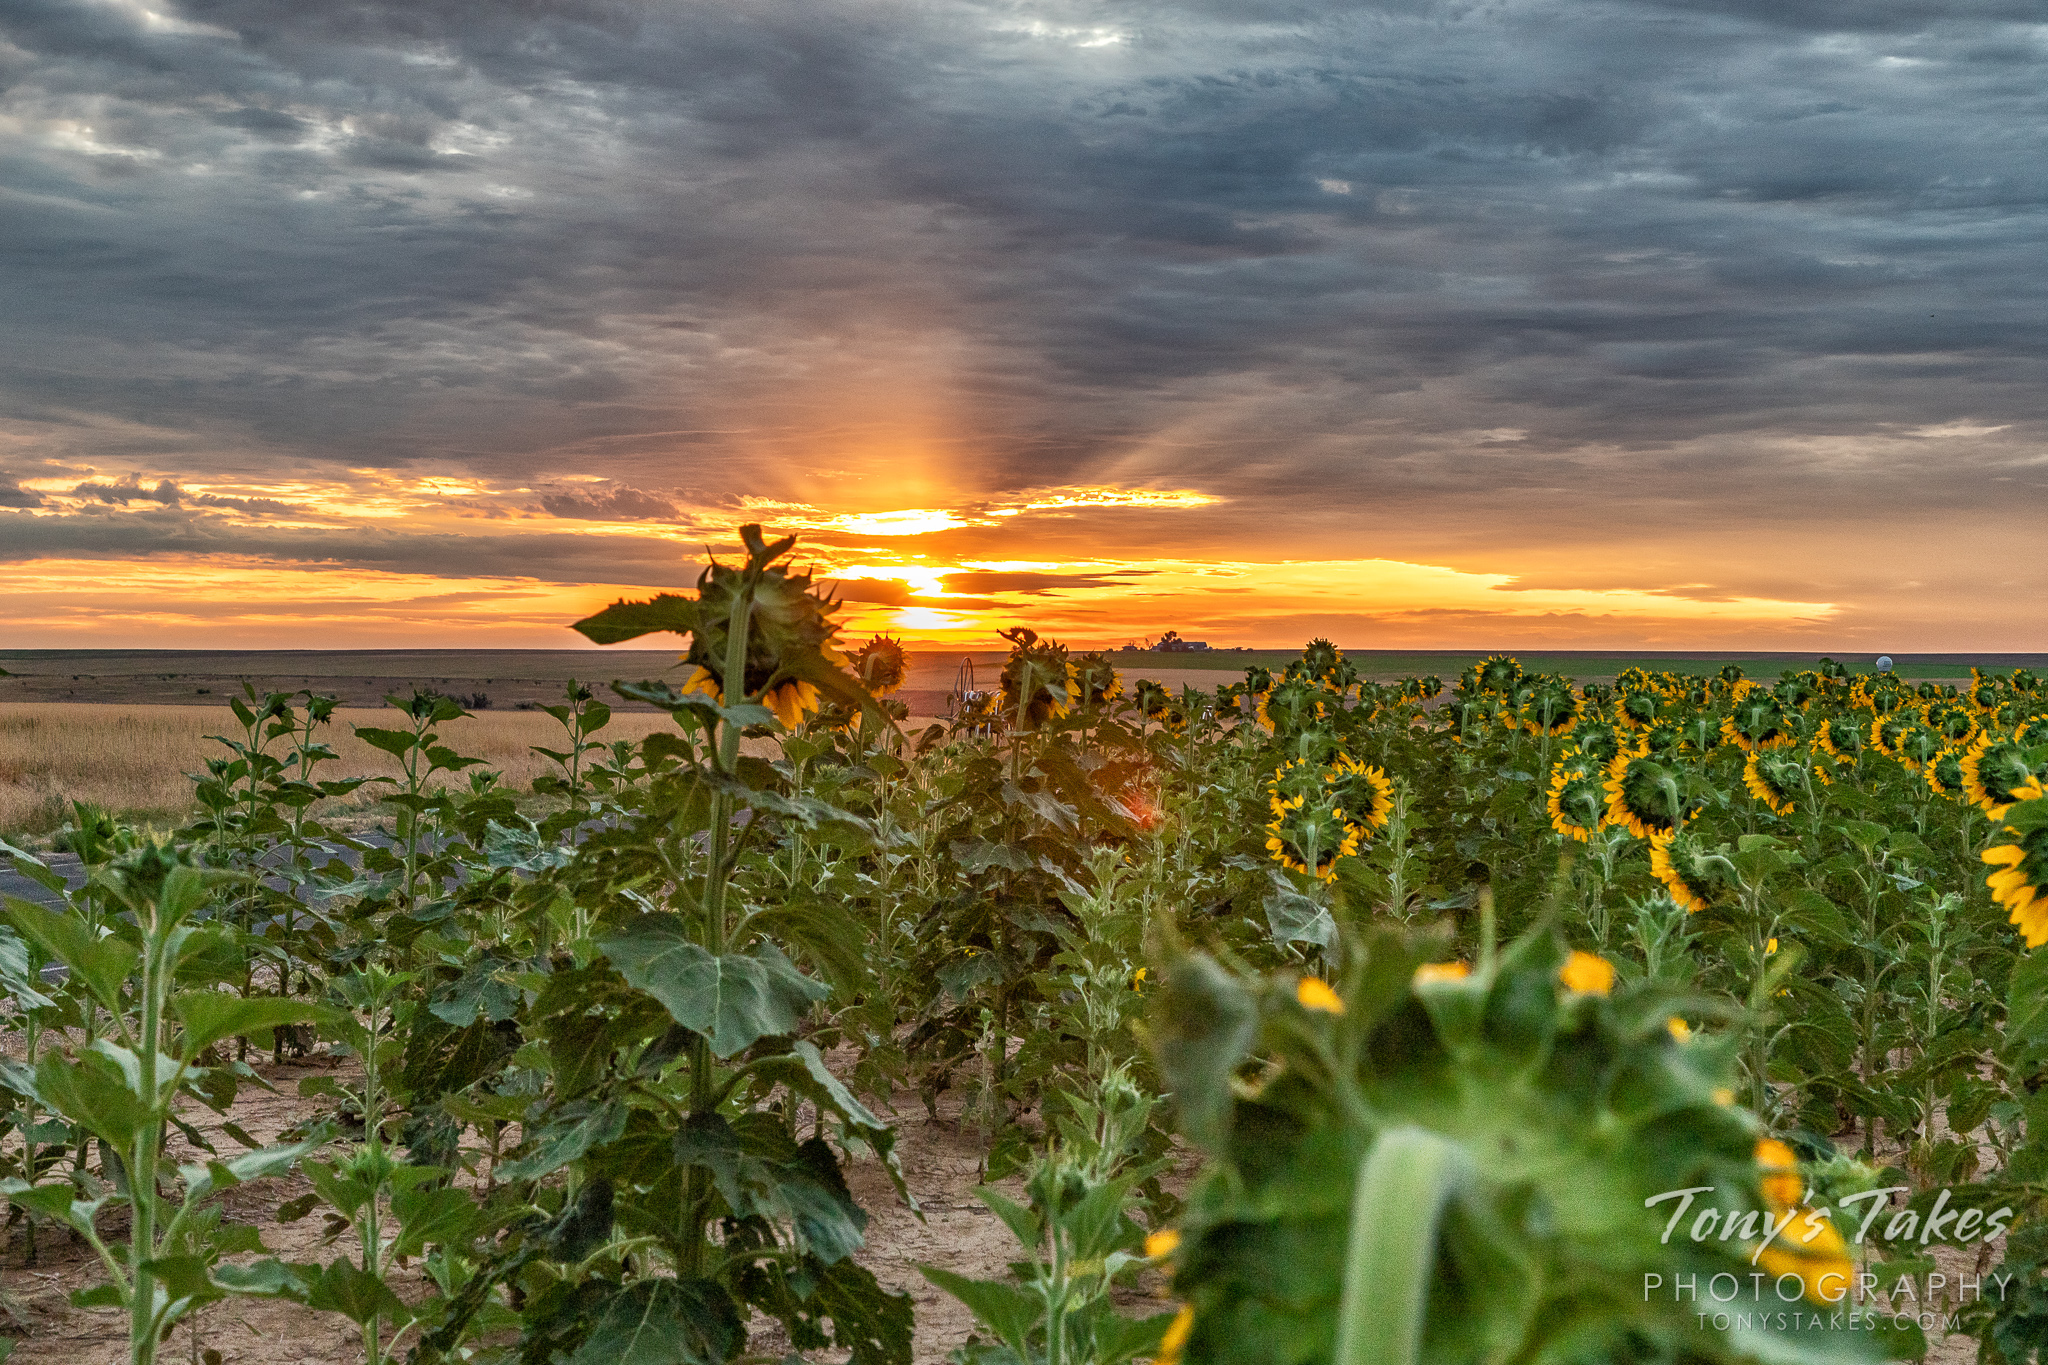 Sunflowers greet the sunrise on the Colorado plains. (© Tony's Takes)